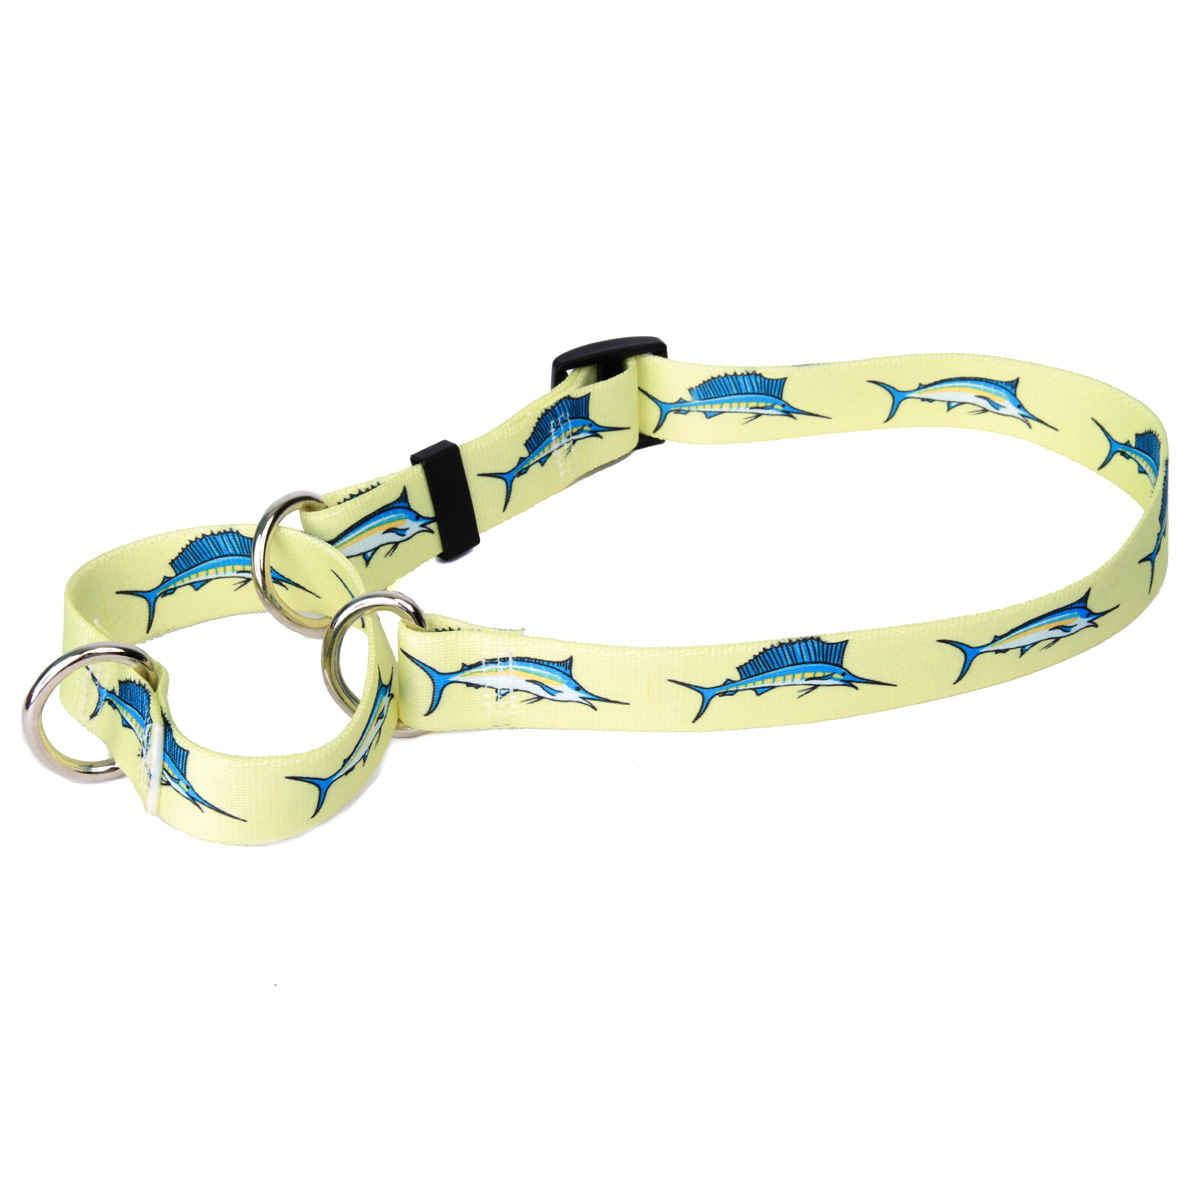 Bill Fish Martingale Collar